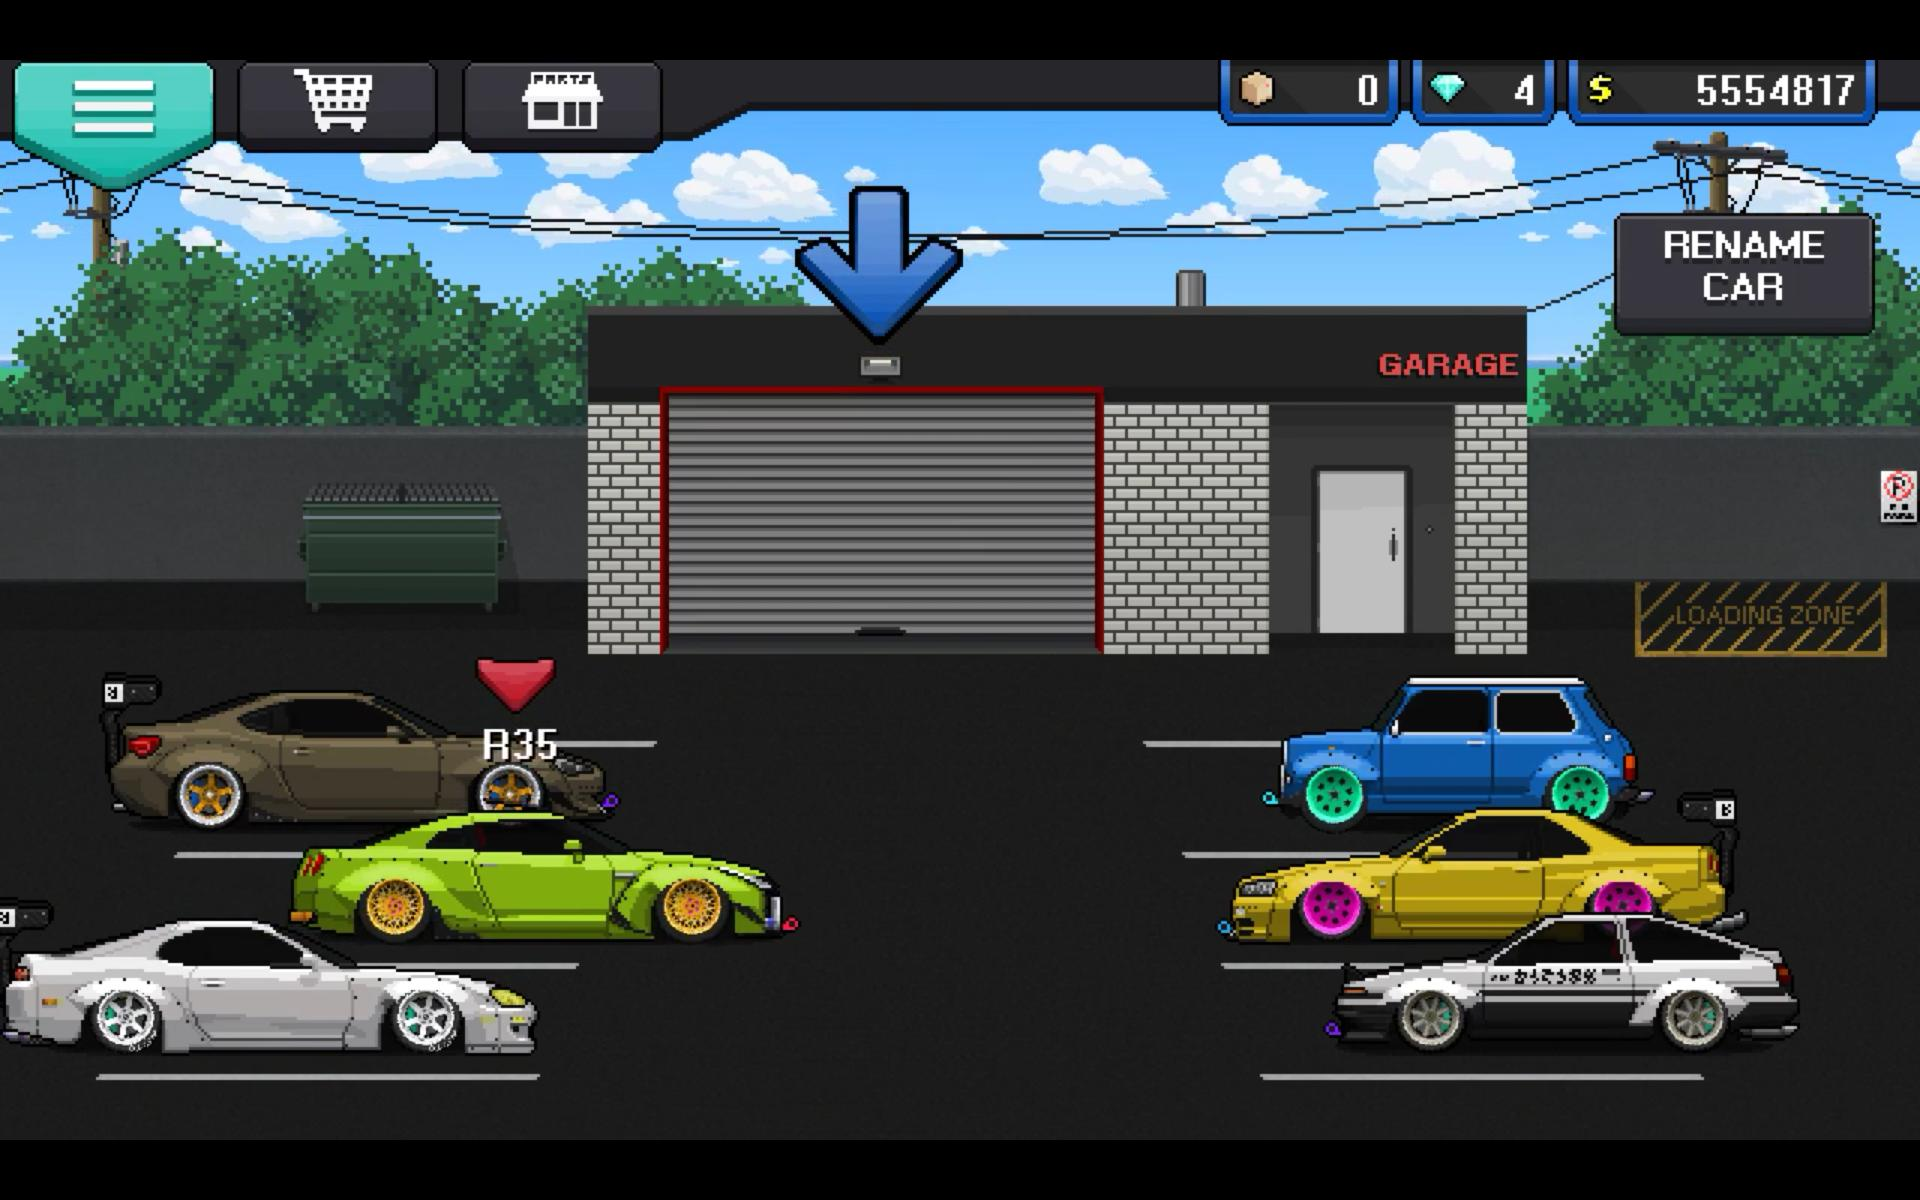 Guide-Pixel Car Racer &Cheats for Android - APK Download